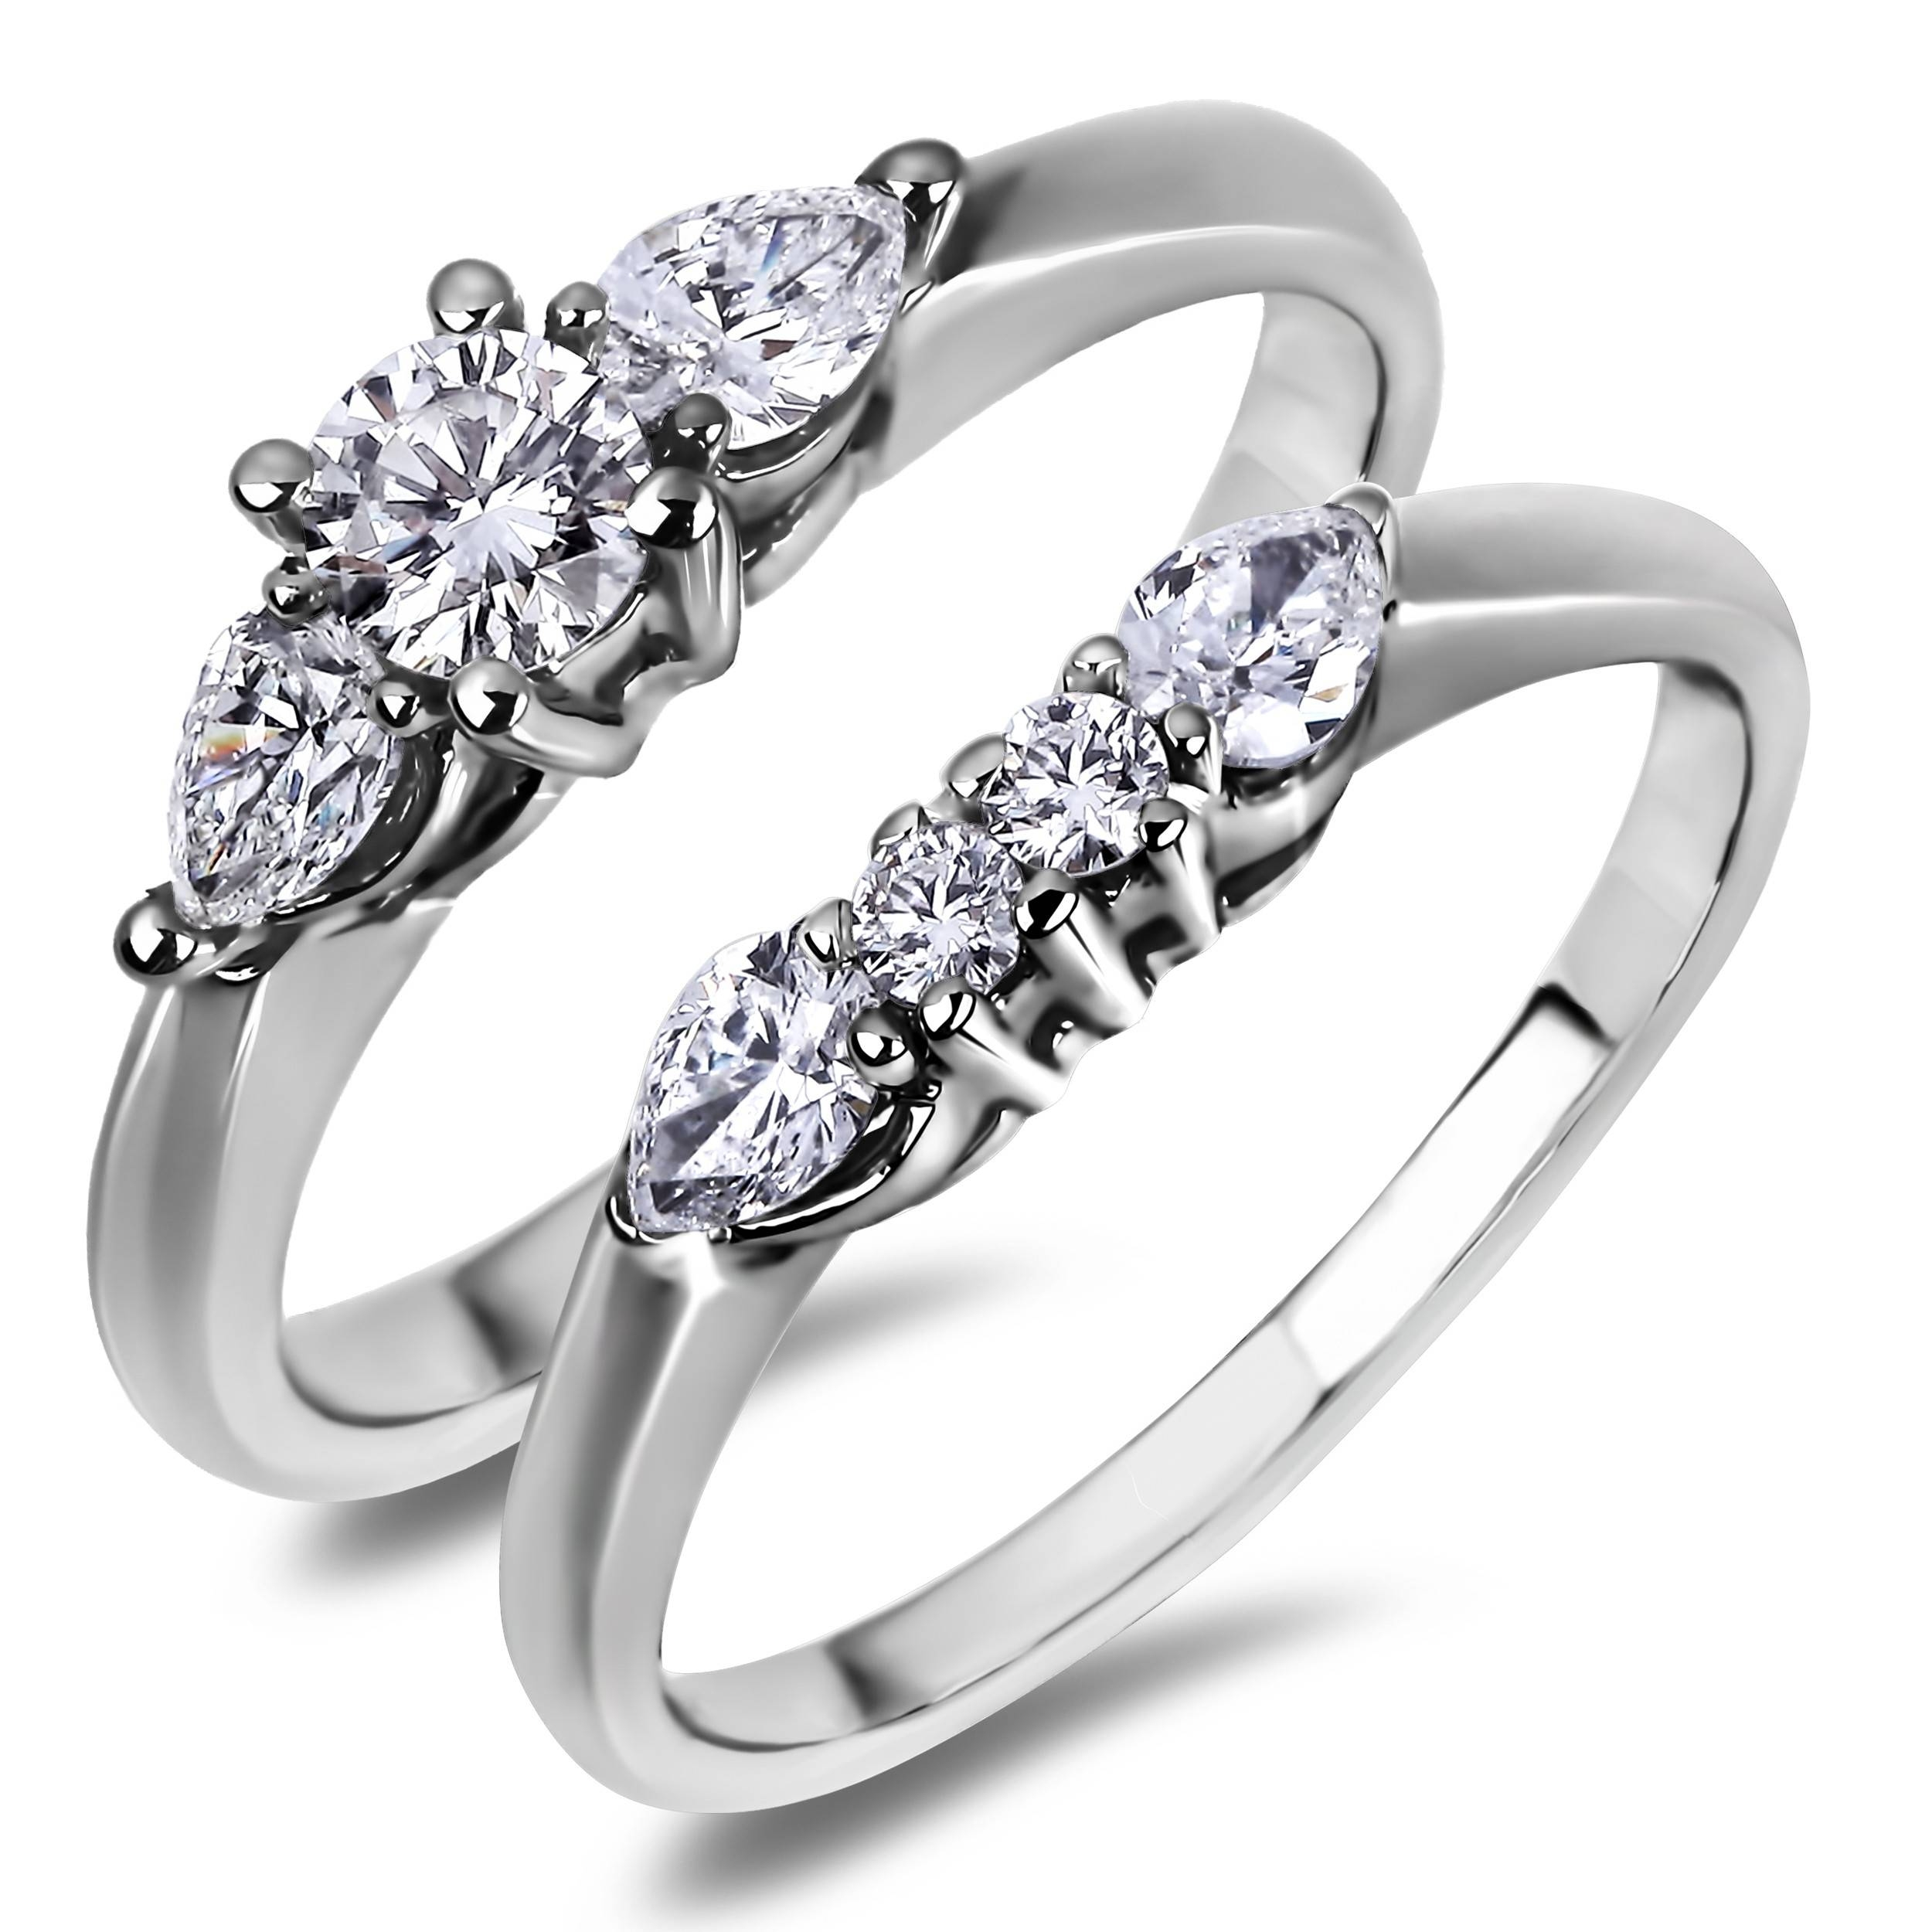 of amp sets wedding matching hers for rings and his beautiful bride white gold groom